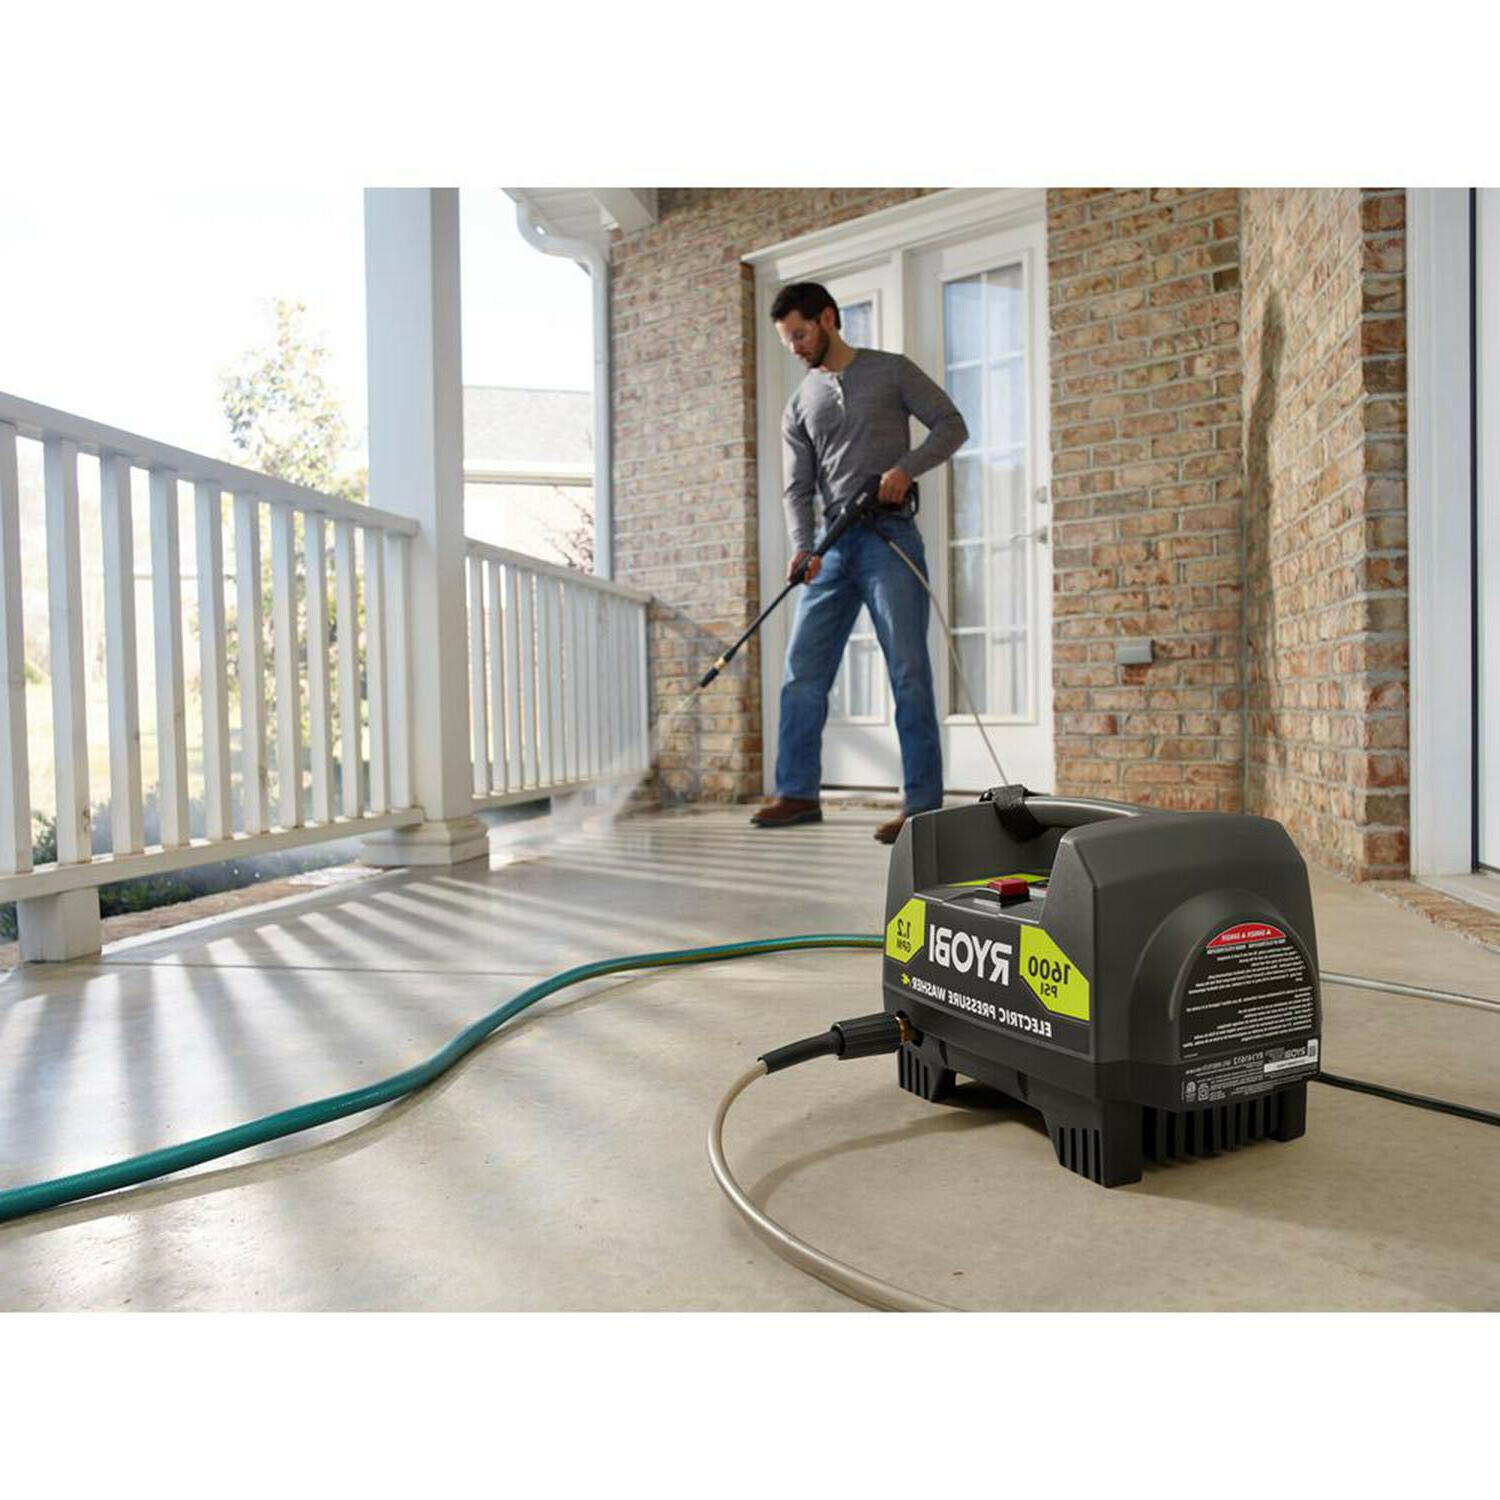 WASHER Power Washer with Nozzle